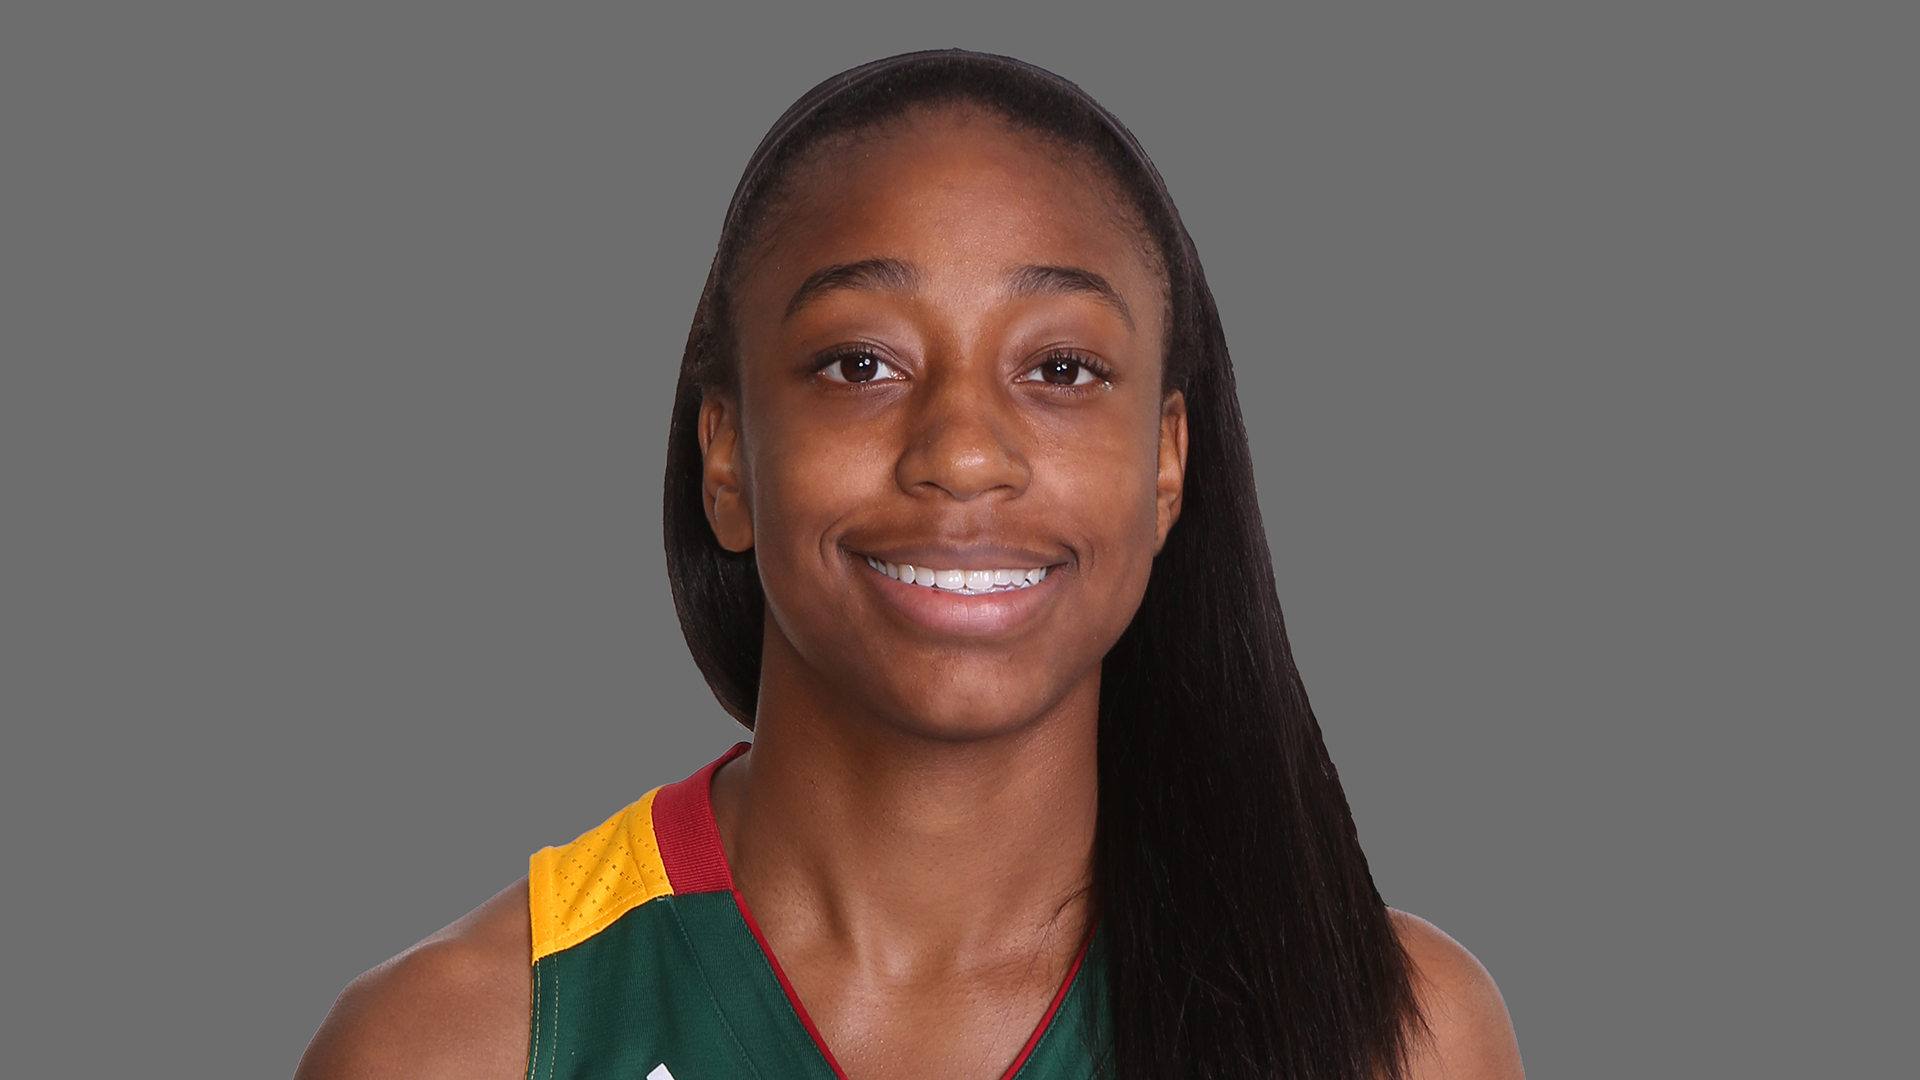 Seattle Storm guard Jewell Loyd named 2015 WNBA Rookie of the Year, All-Rookie team announced